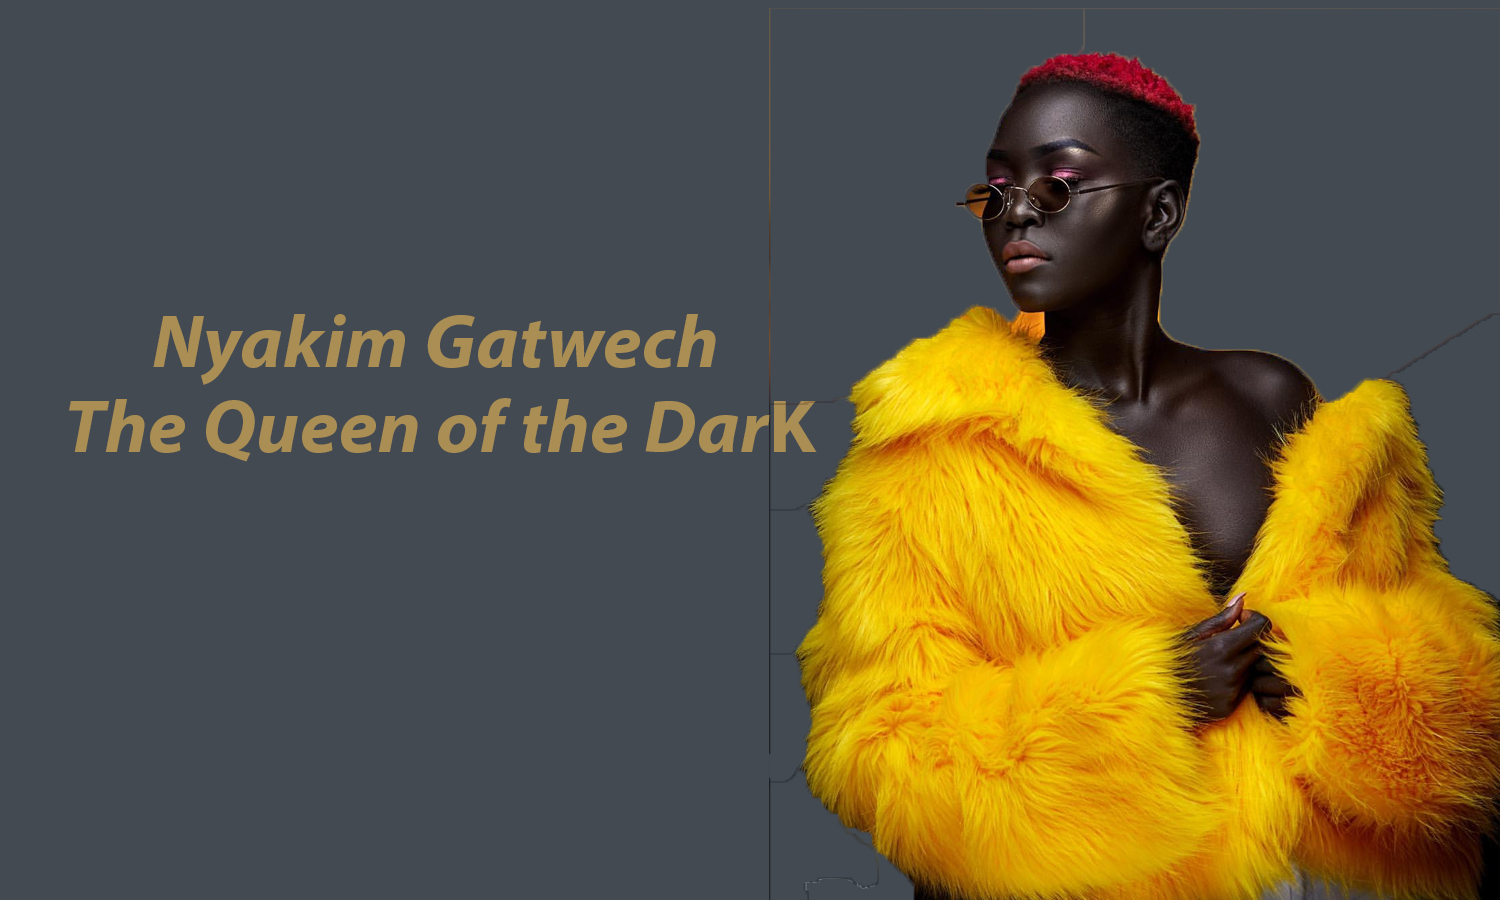 AFRICAN FASHION STYLE MAGAZINE - The Queen of Dark, Nyakim Gatwech - Photographer DAN NGU - Media Partner DN AFRICA - STUDIO 24 NIGERIA - STUDIO 24 INTERNATIONAL - Ifeanyi Christopher Oputa MD AND CEO OF COLVI LIMITED AND STUDIO 24 - Nahomie NOOR COULIBALY